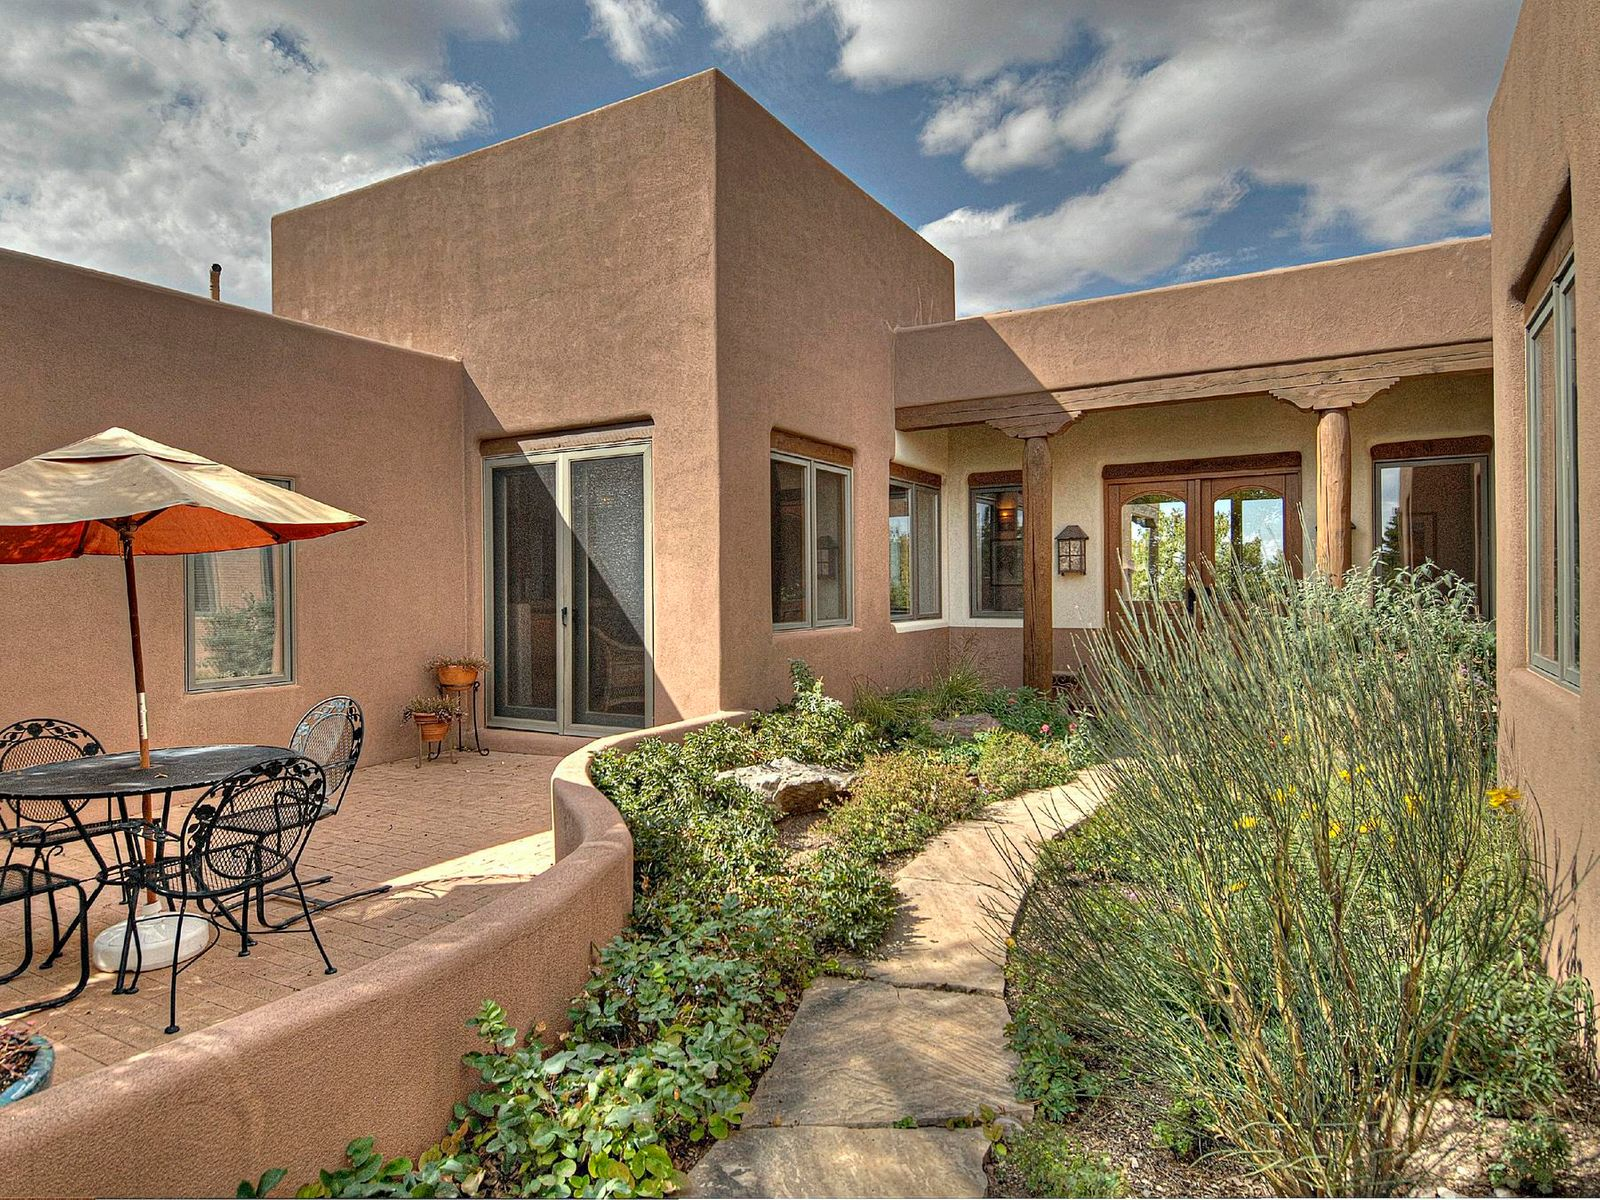 81  Bluestem Drive, Santa Fe NM Single Family Home - Santa Fe Real Estate